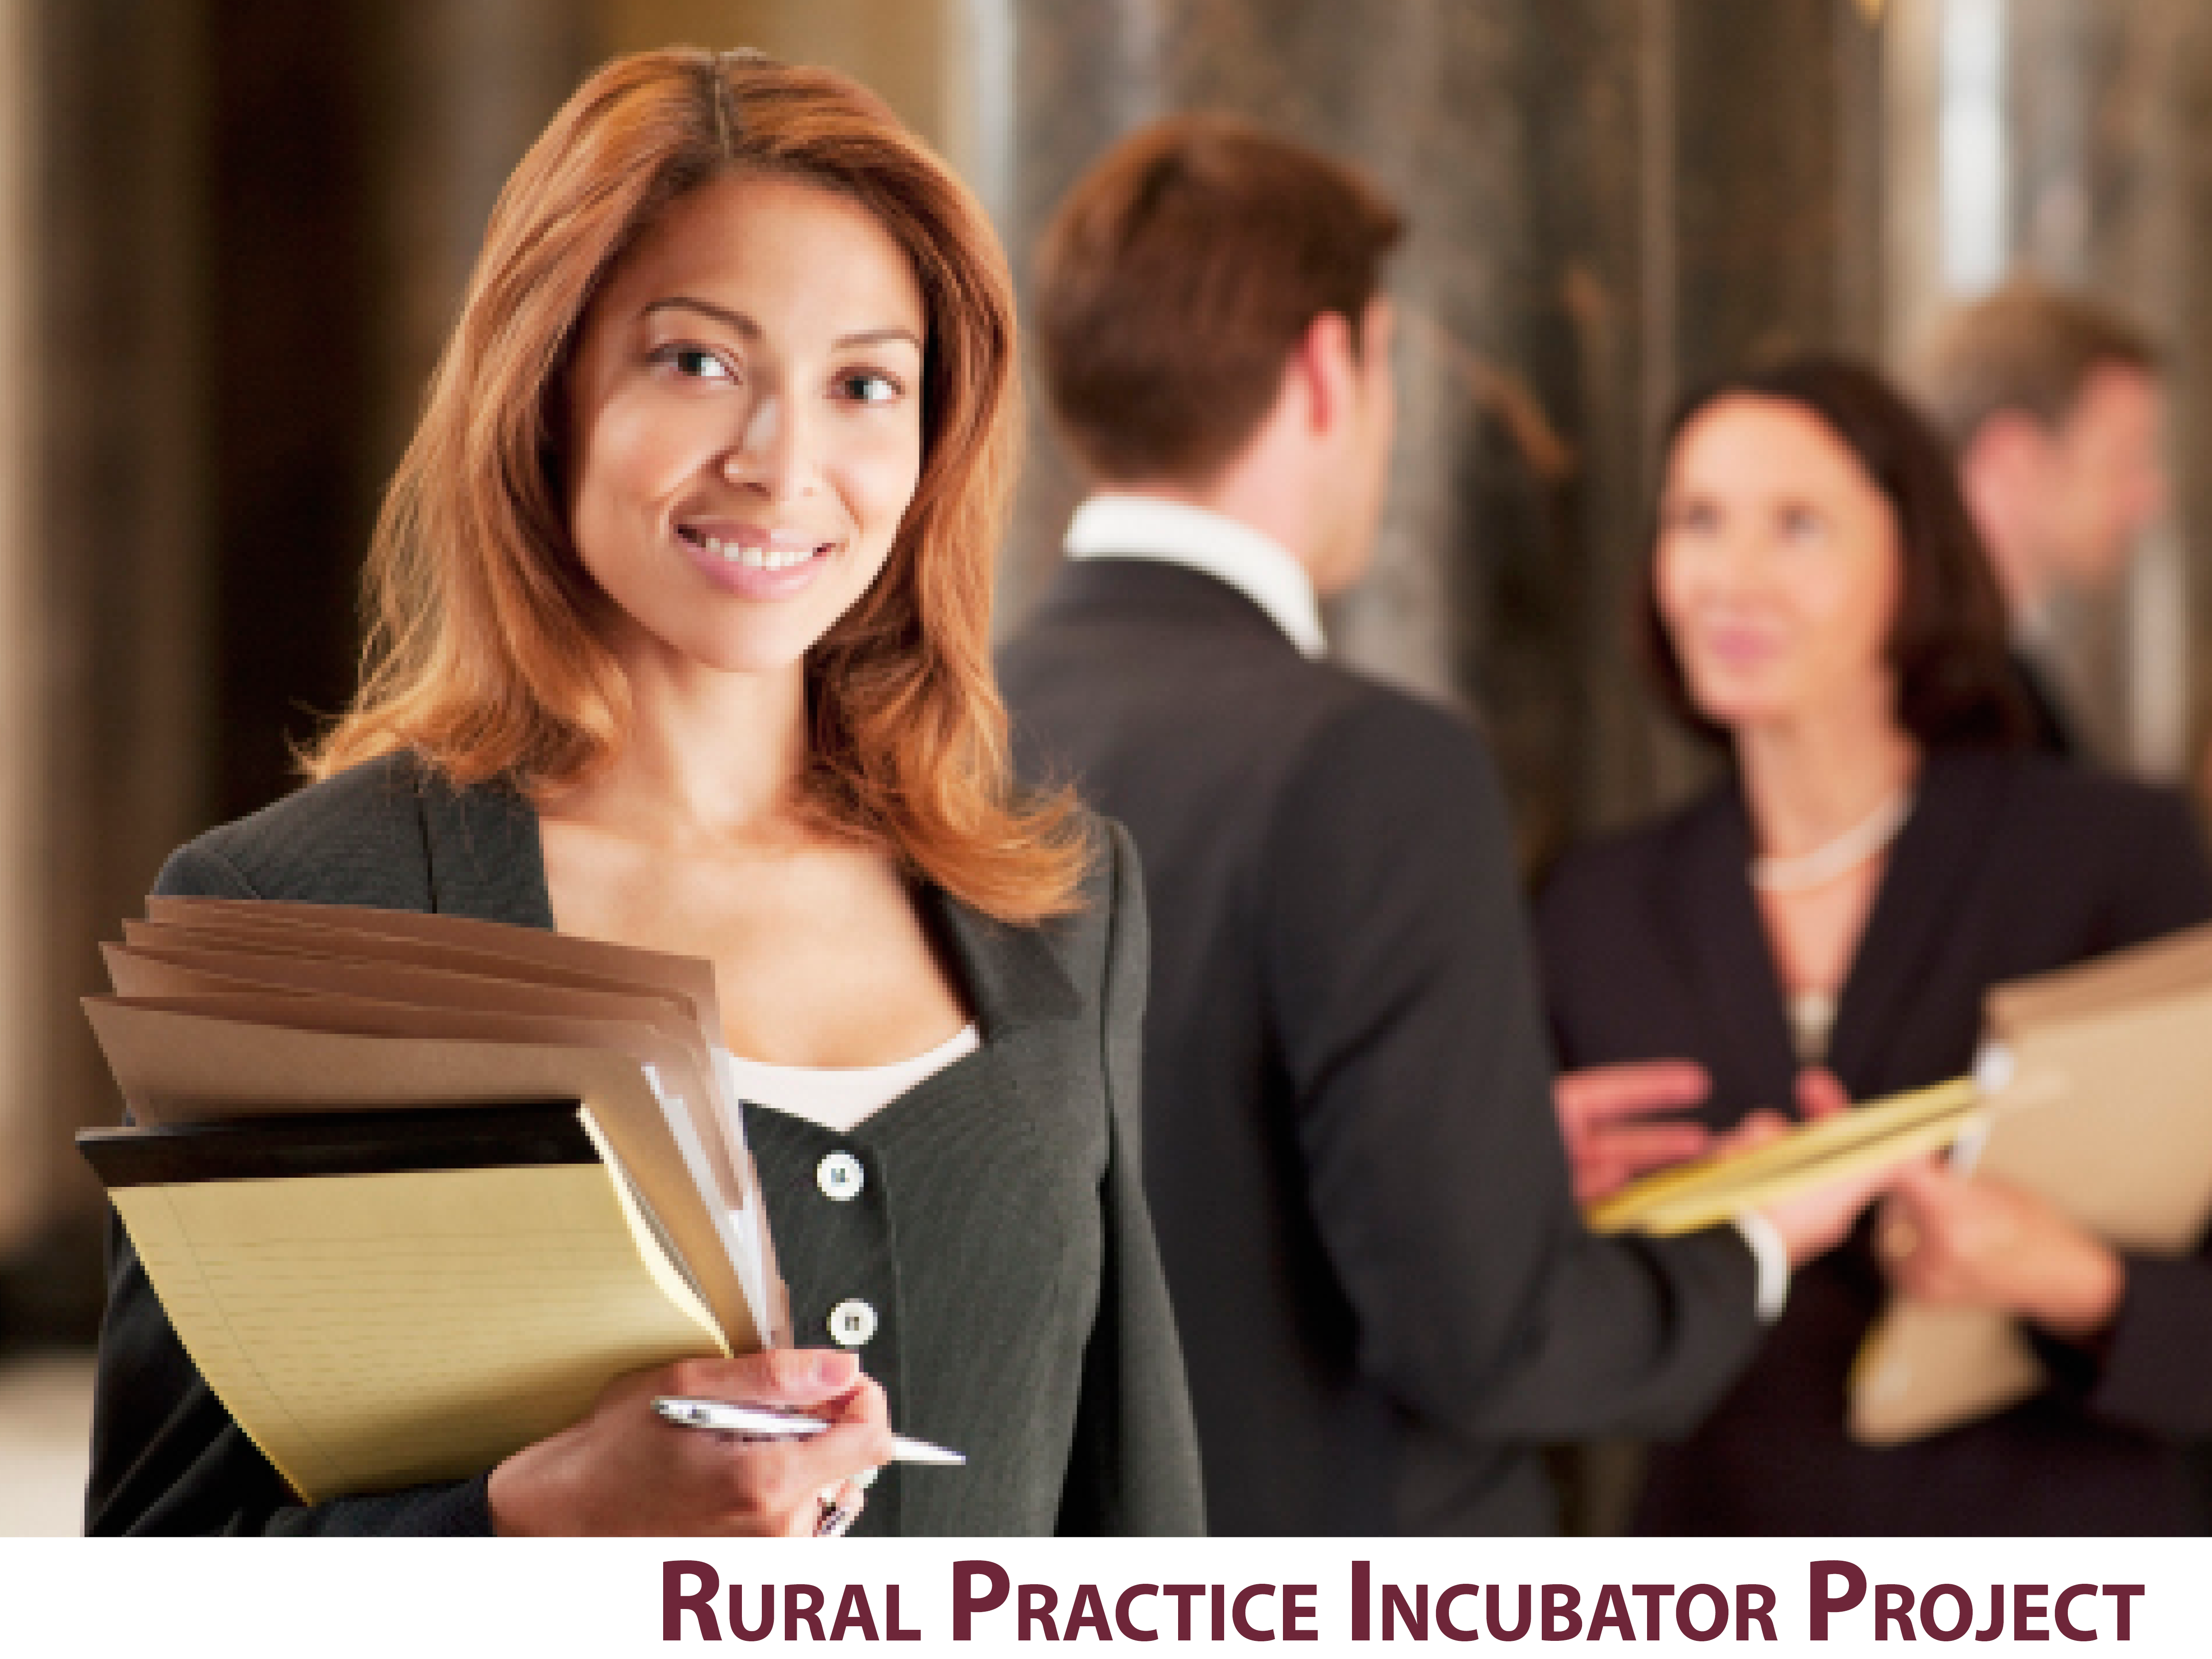 Rural Practice Incubator Project